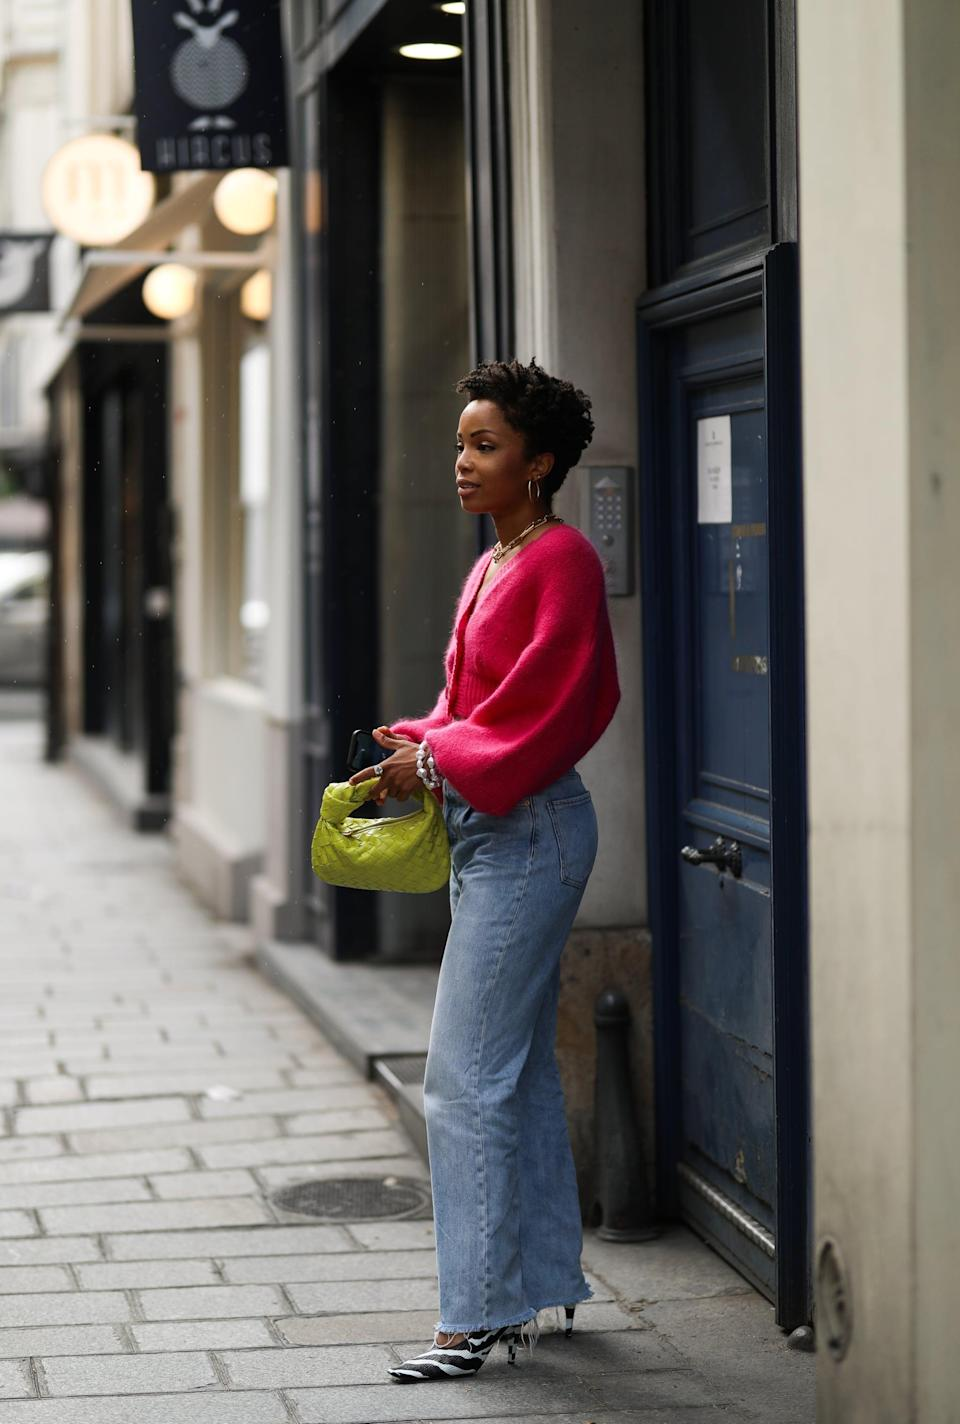 <p>Brighten up baggy jeans with a colorful sweater and bag combo. </p>